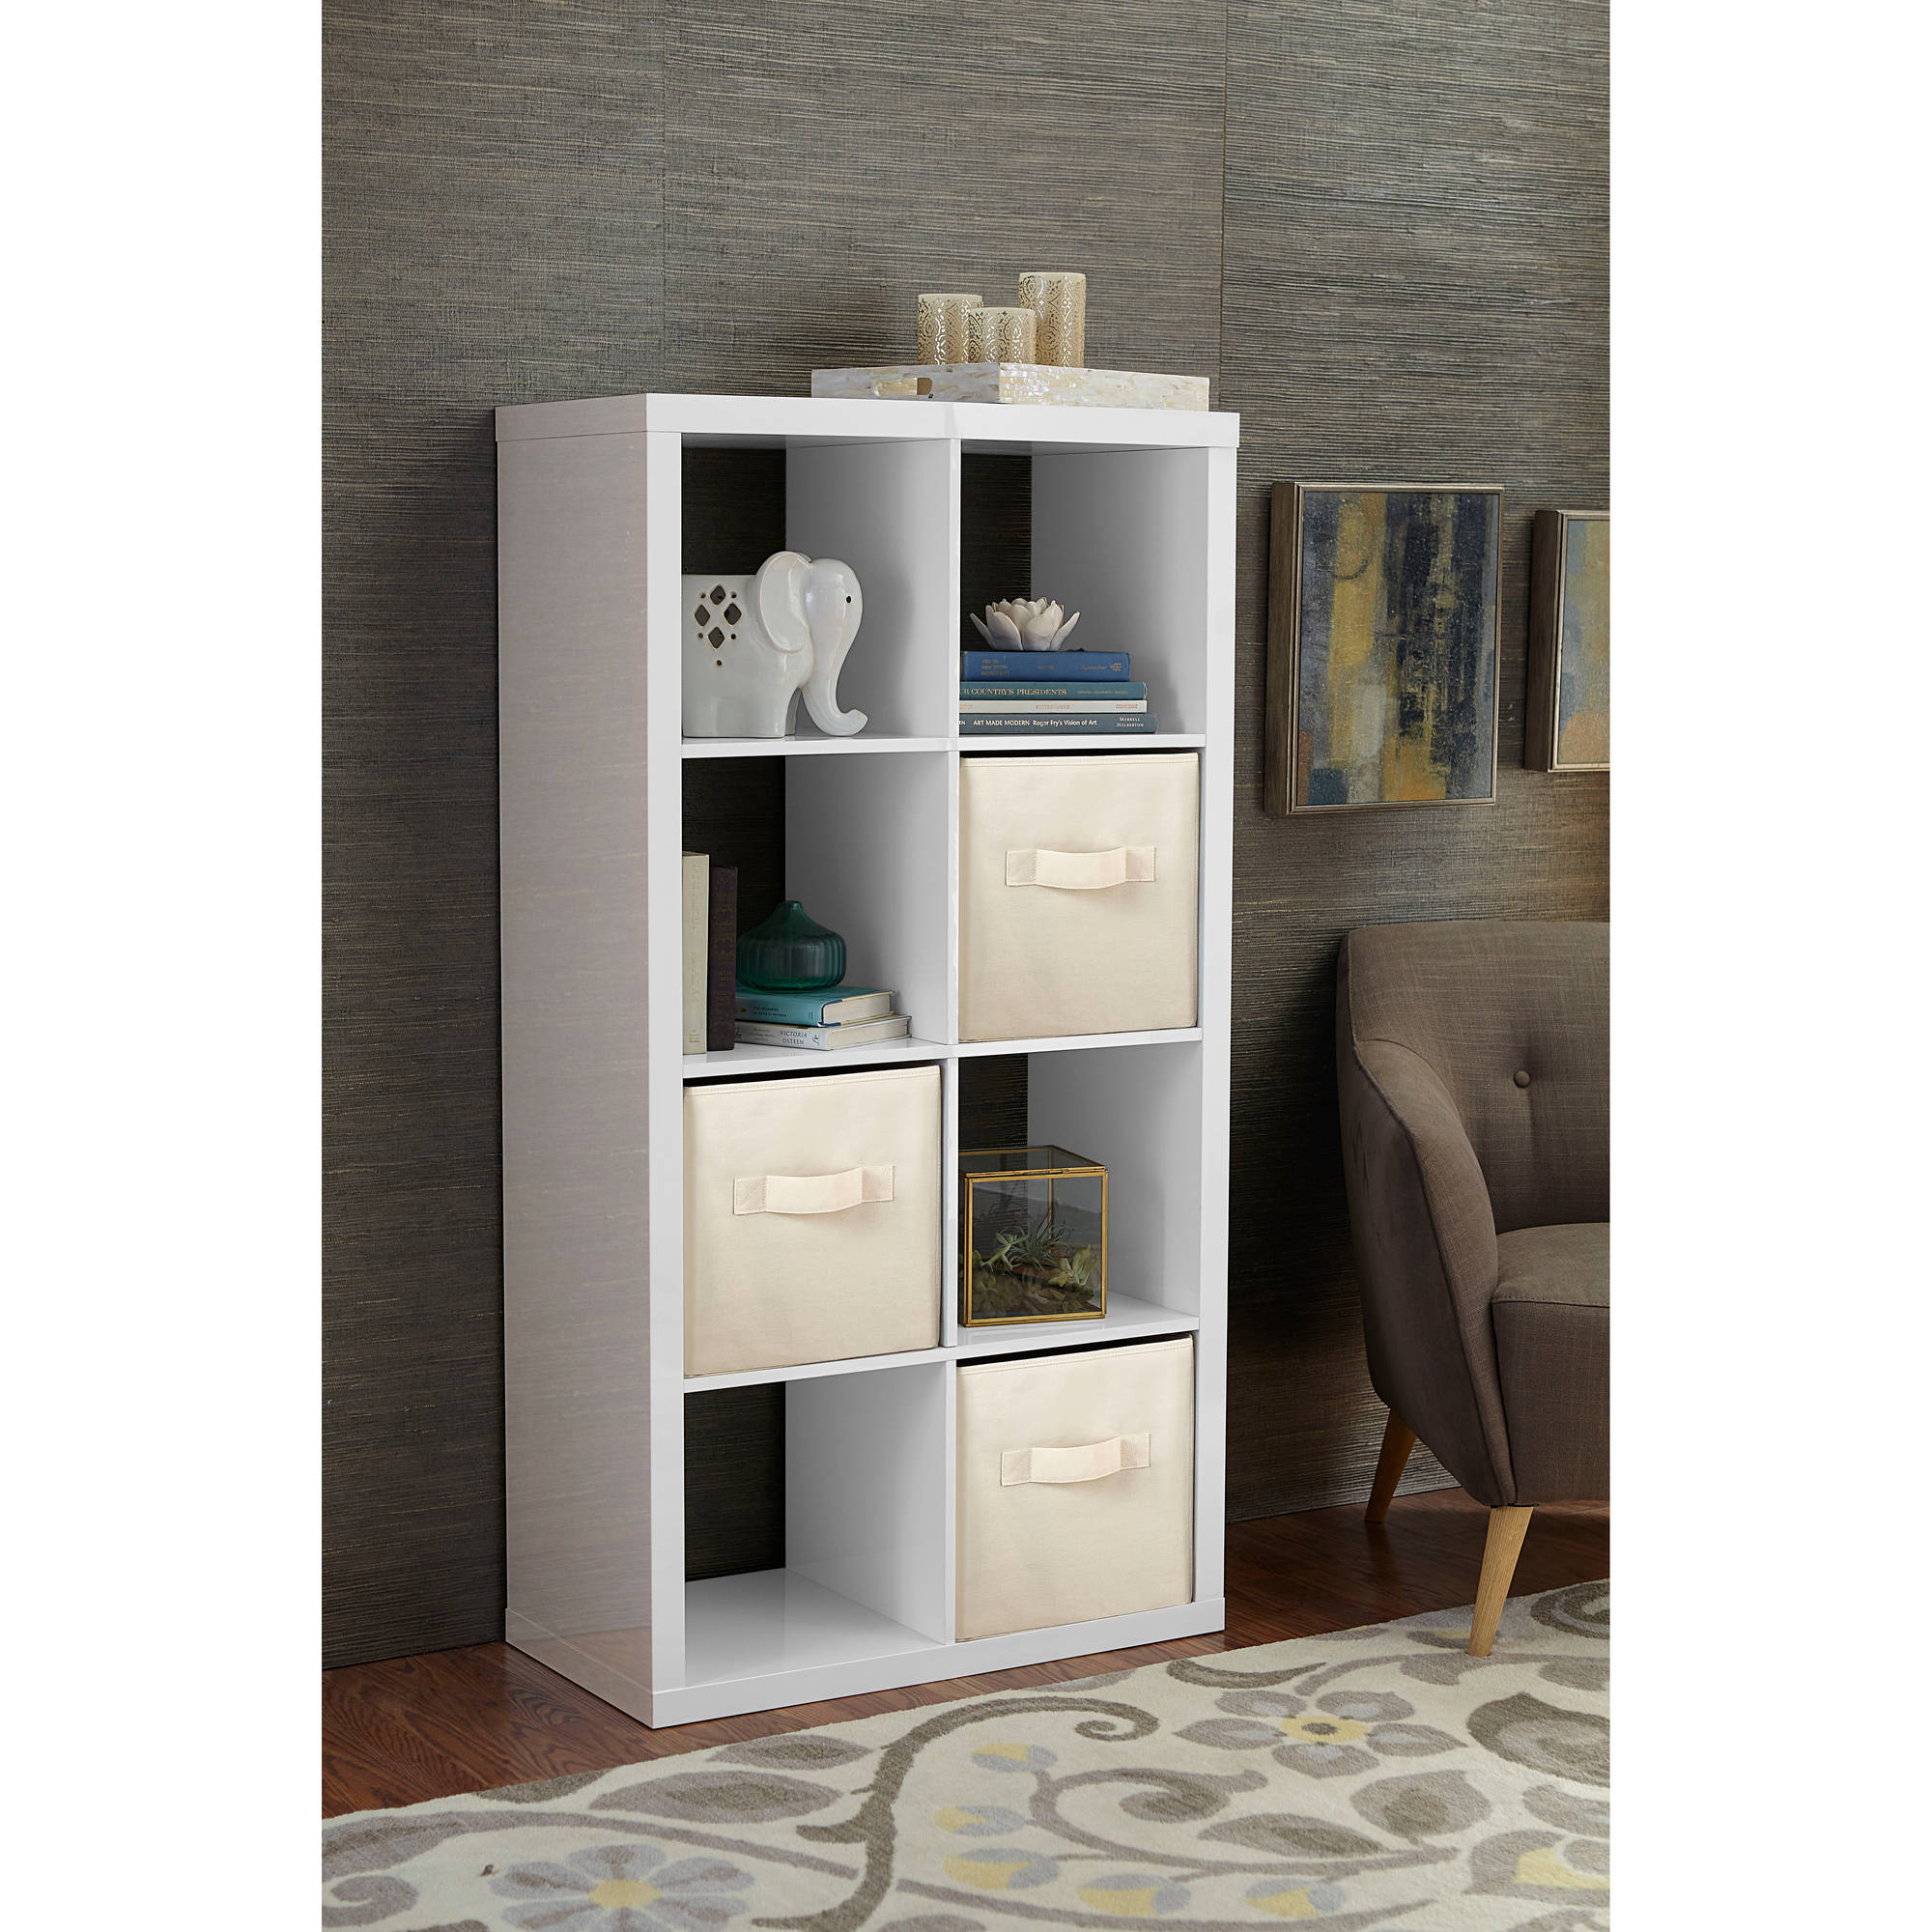 closet pin diy organizer shelf home stand closetmaid in tv cube bookcases shelving furniture books shoes display shelves storage ebay